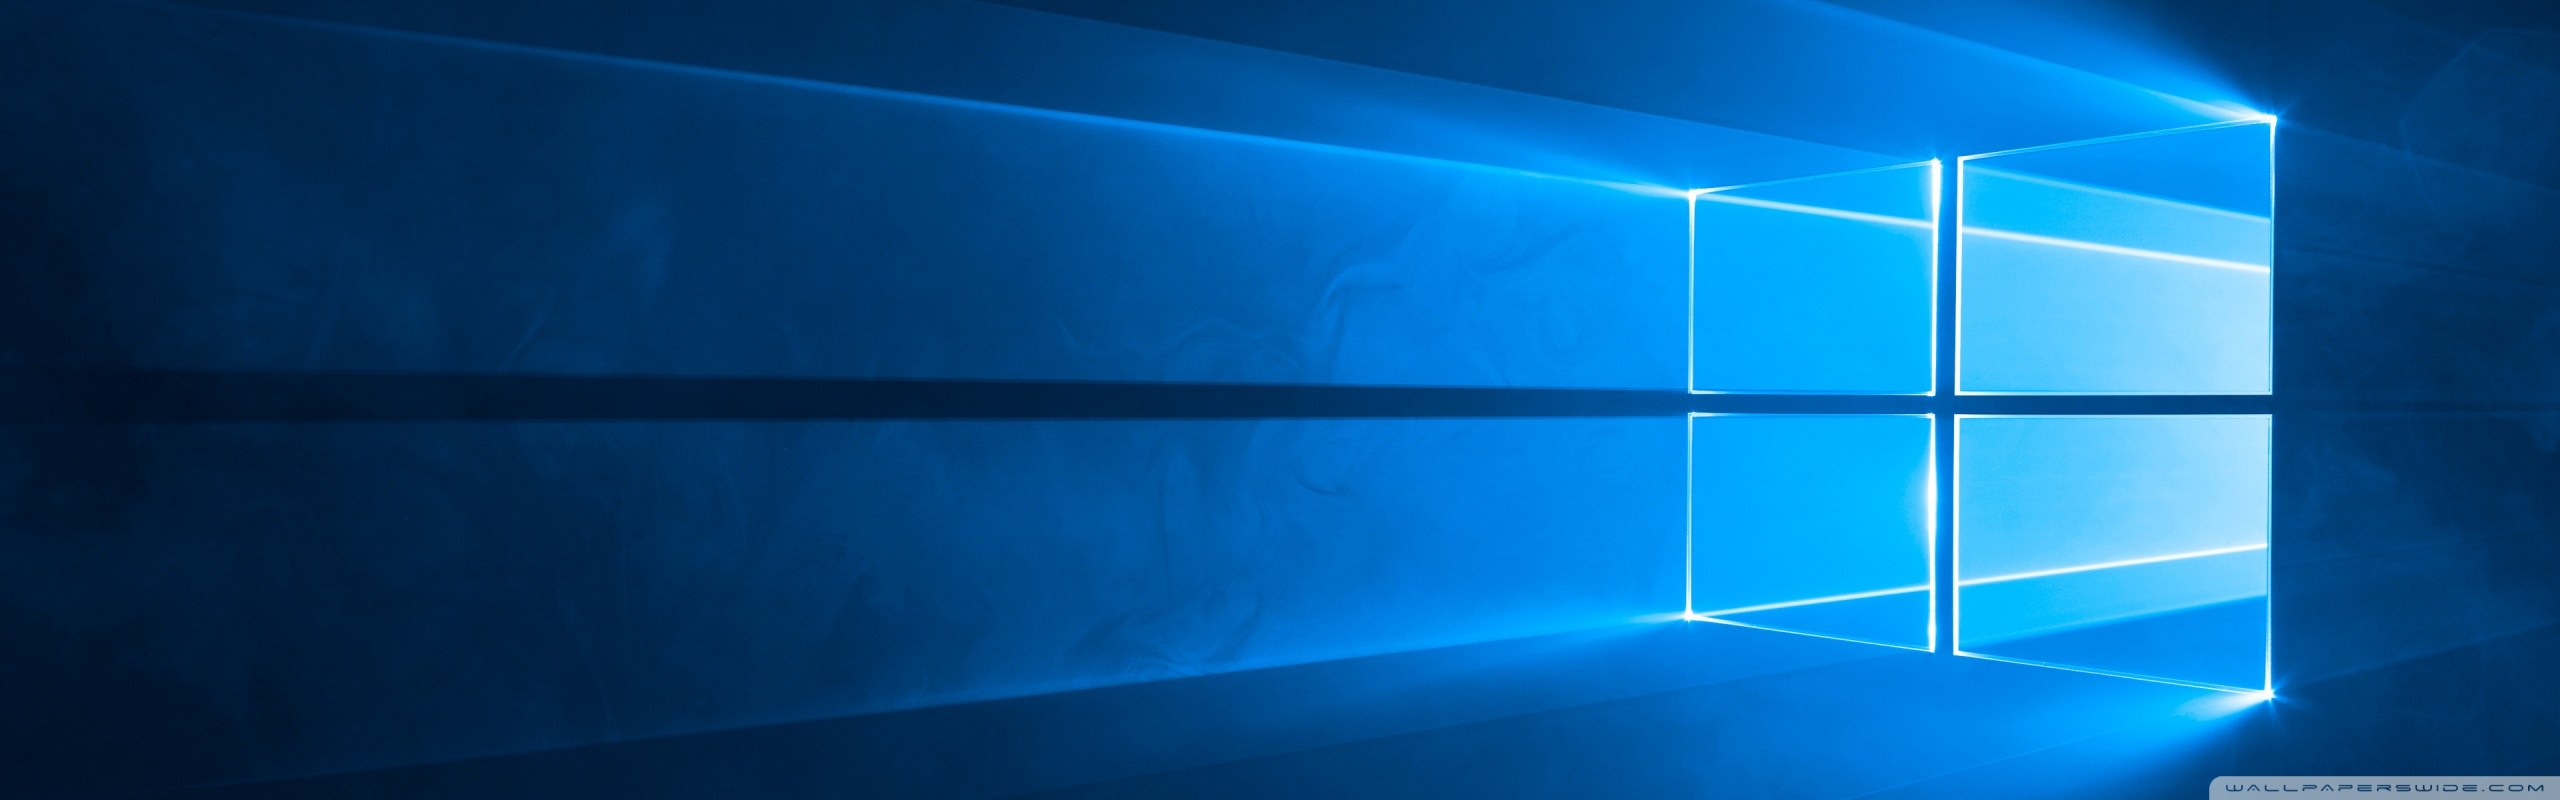 Windows Dual Monitor Wallpaper